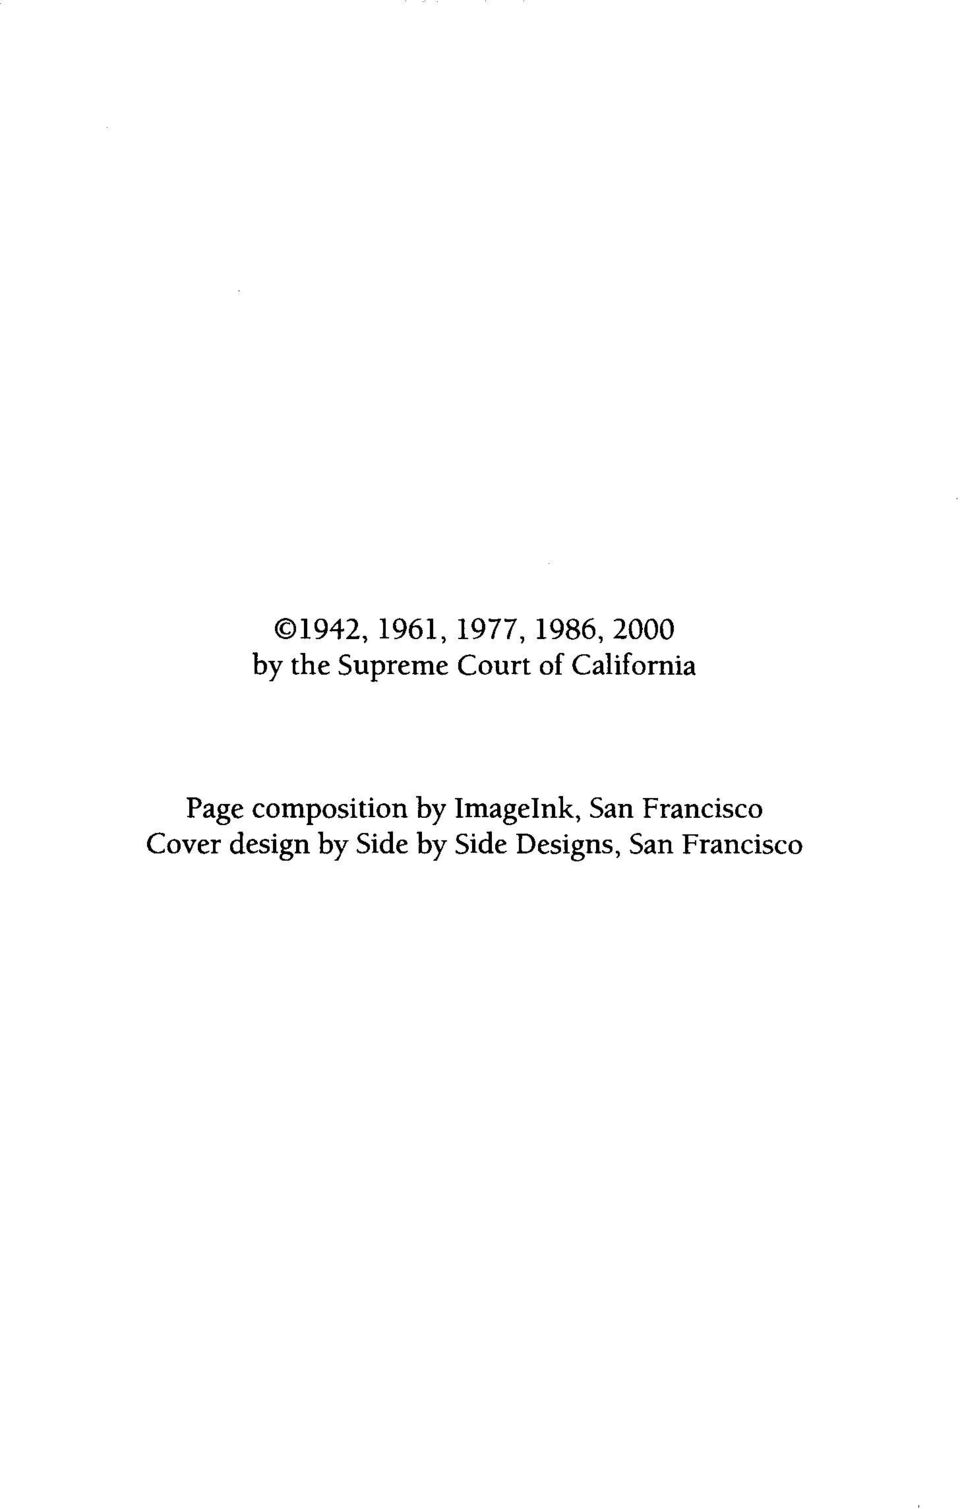 Side by Side Designs, San Francisco Editiorial preparation and